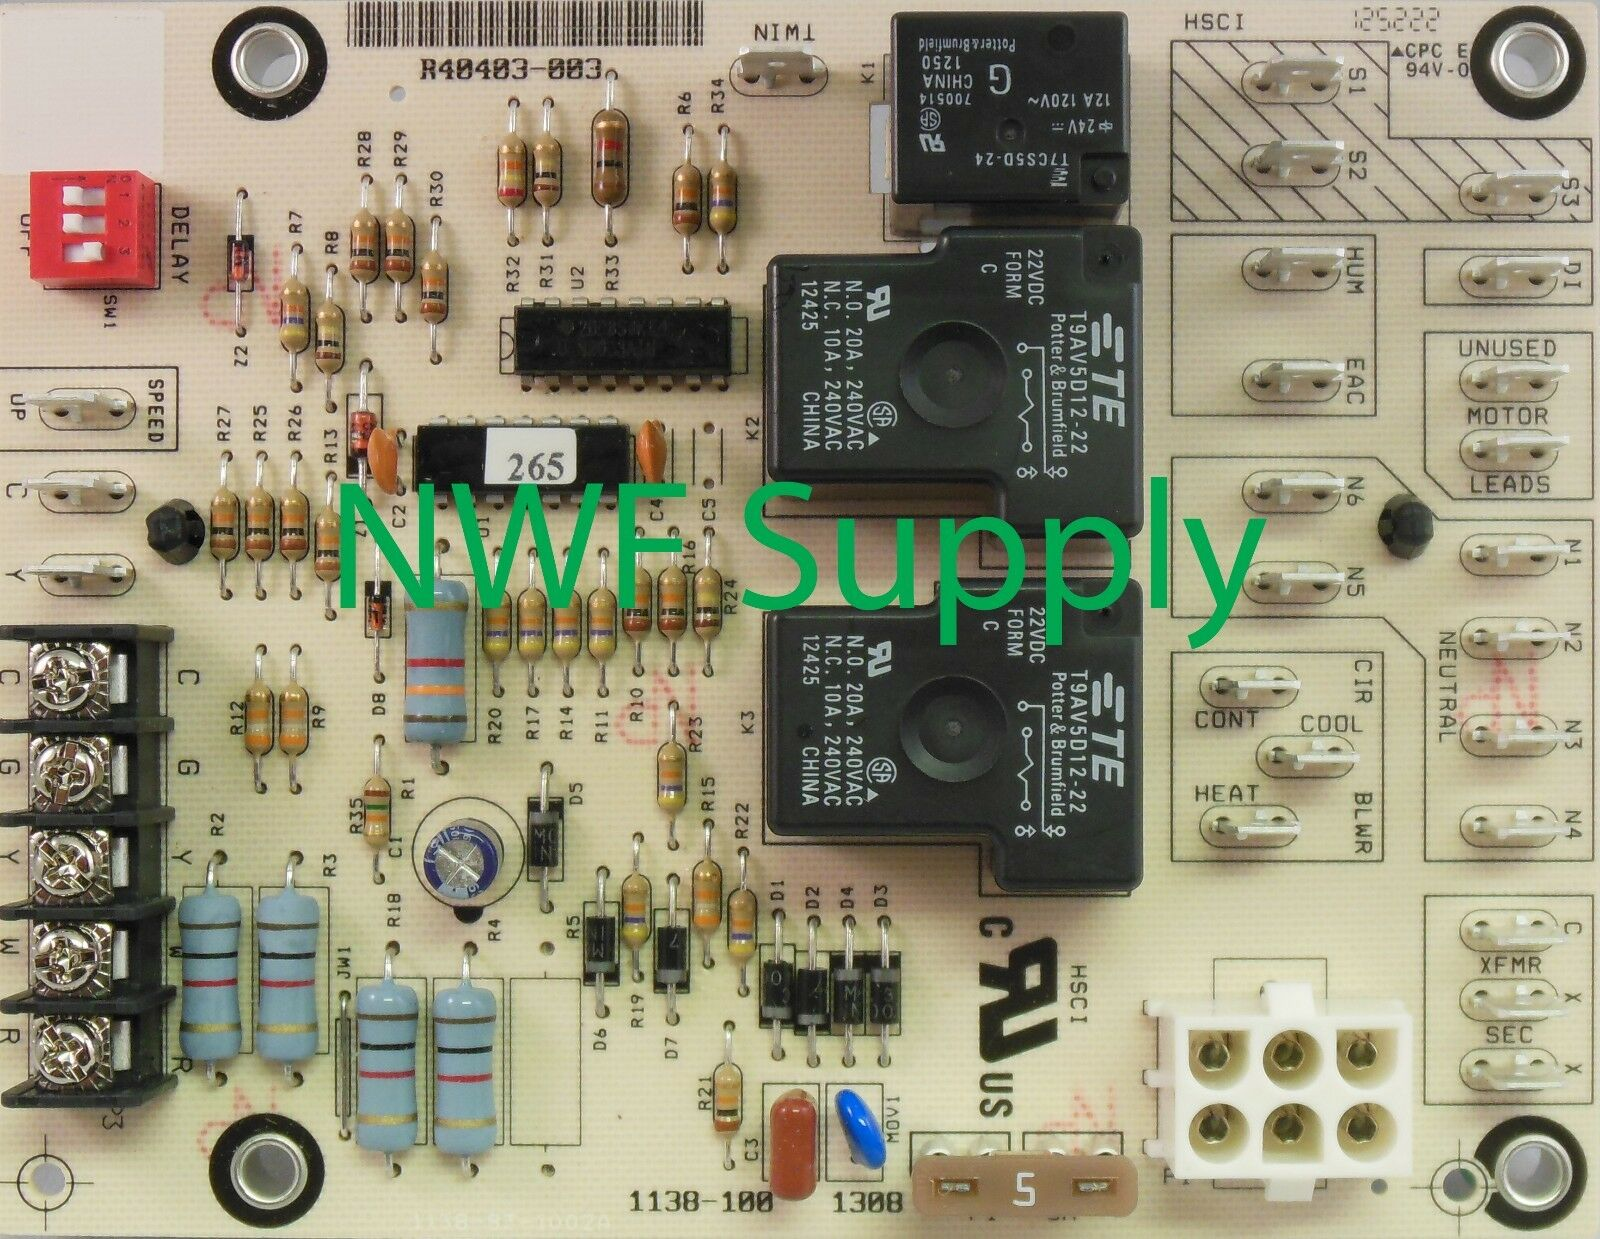 Honeywell Fan Control Furnace Circuit Board St9120c4008 9500 Emerson M055pwcsw 0283 Goodman 0131m00112 Blower Motor Ebay 1 Of 1only 2 Available